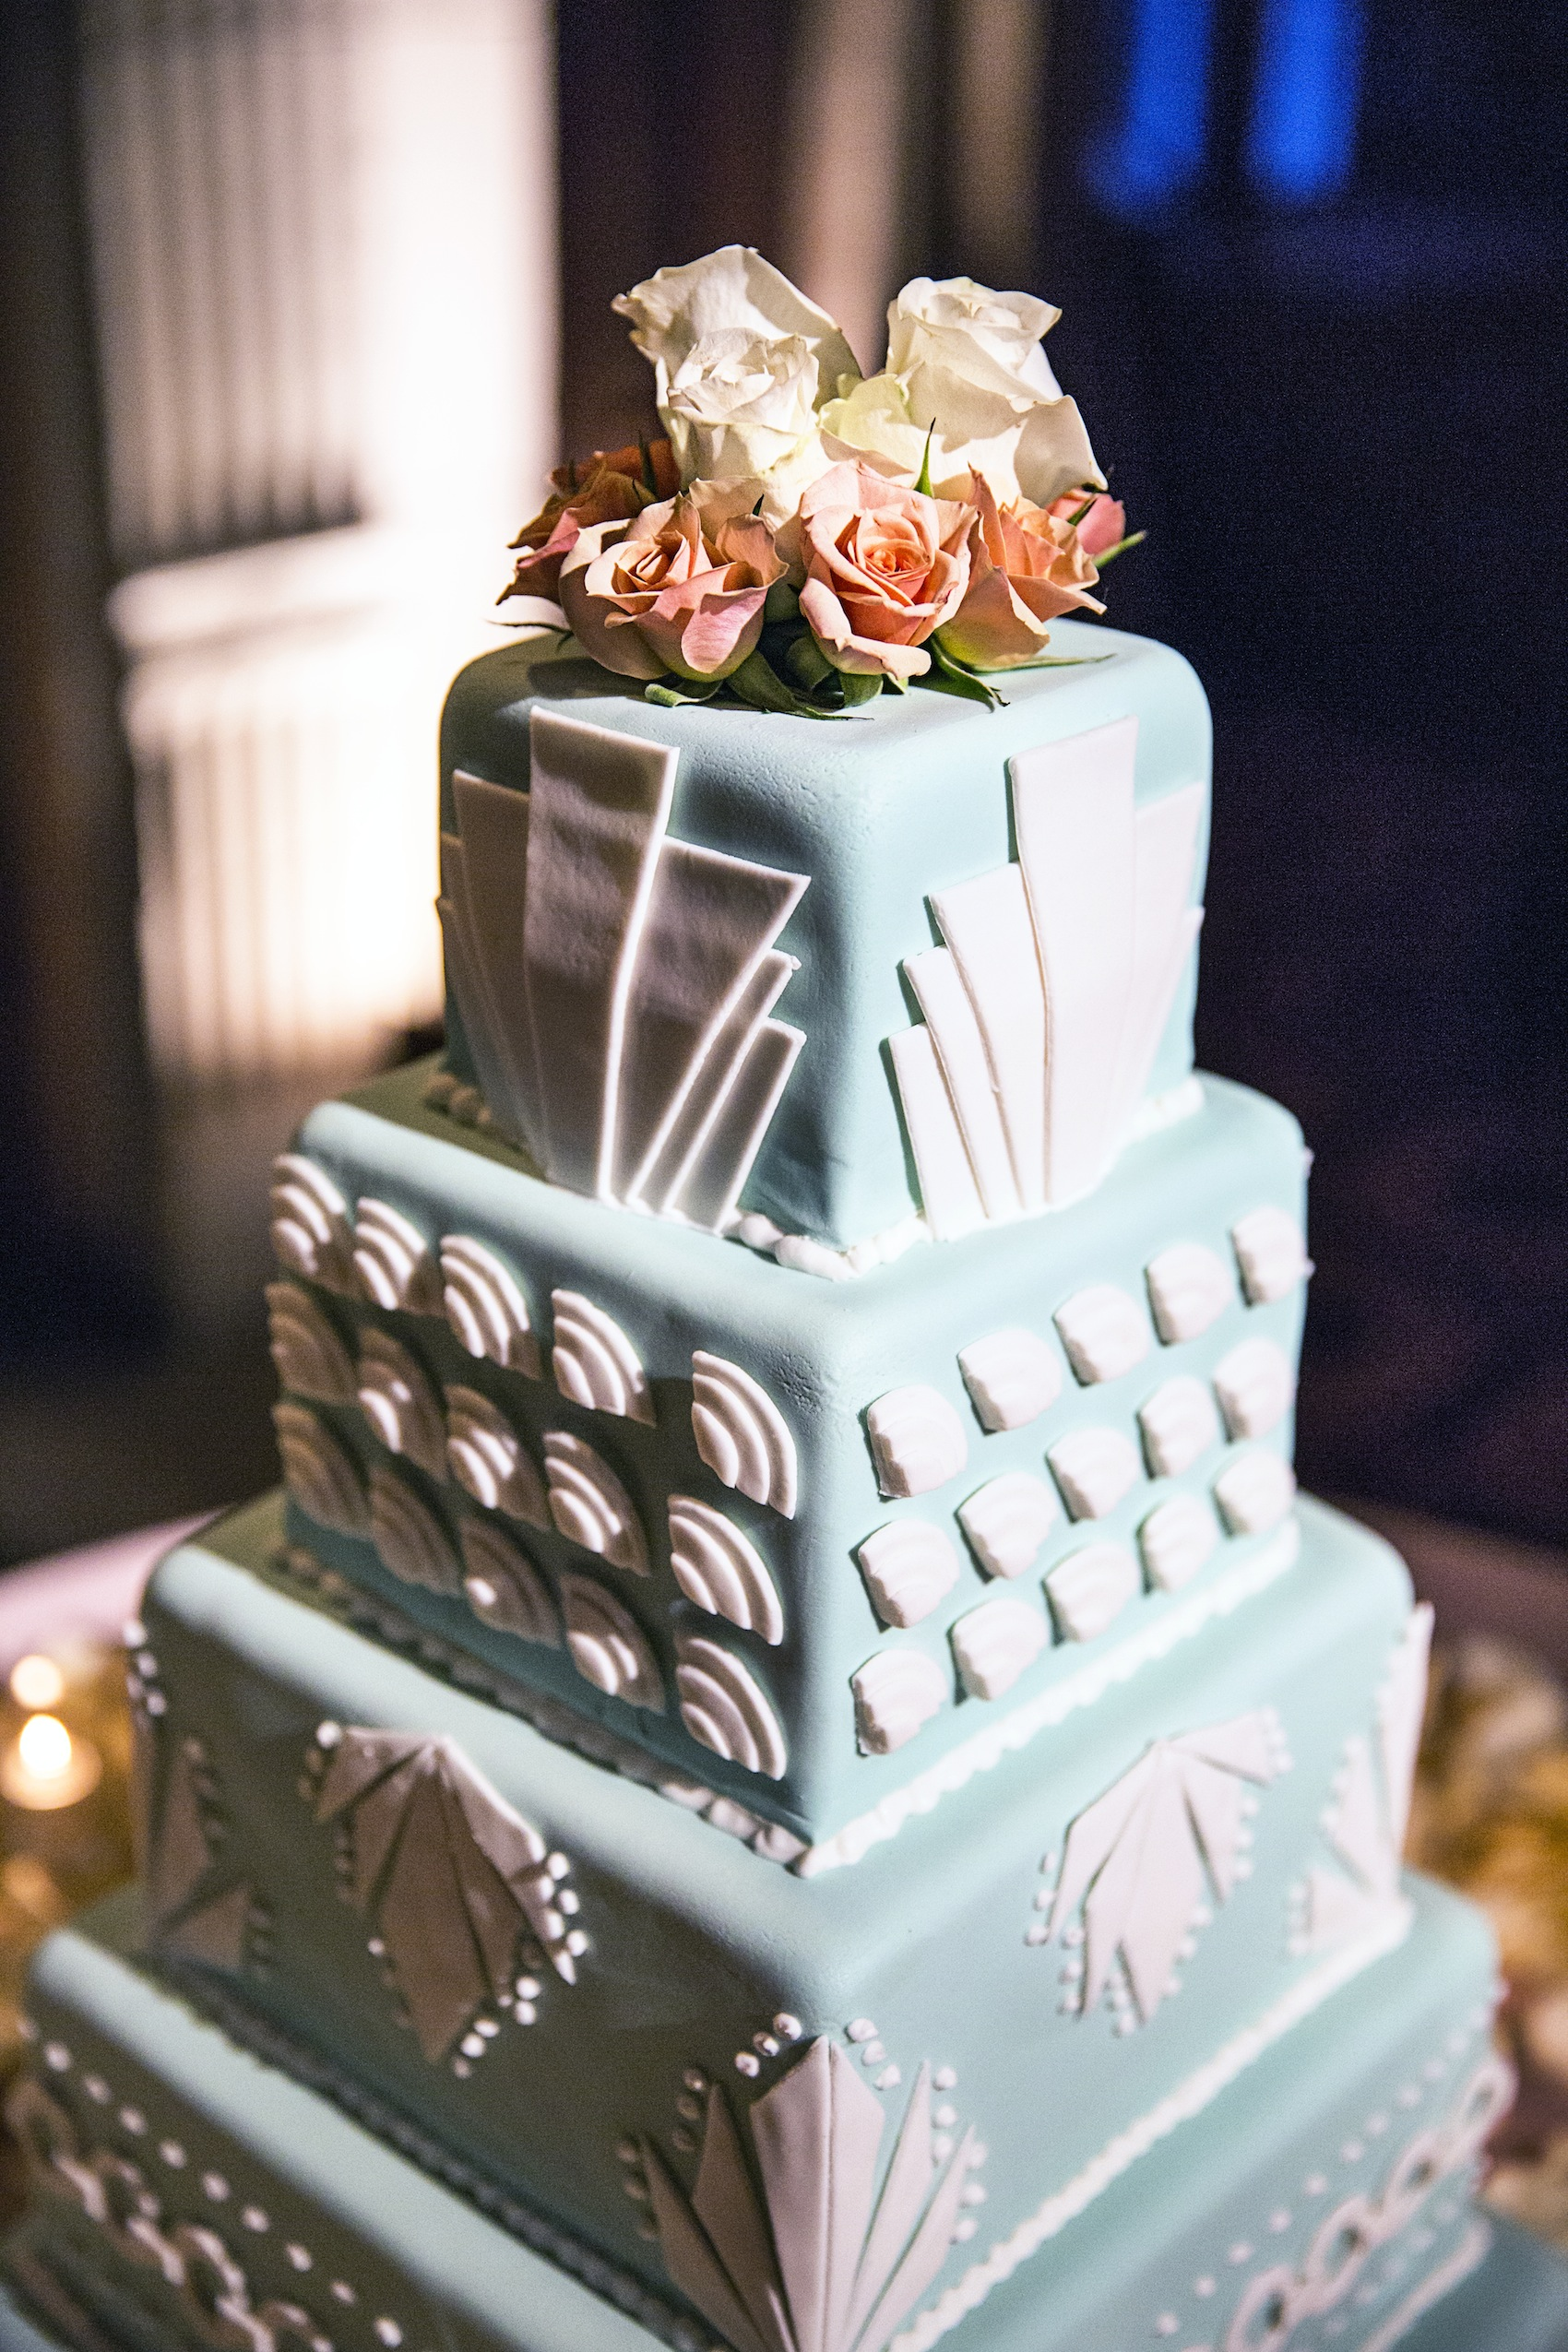 Wedding cake in Art Deco design - photo by Jessica Stout